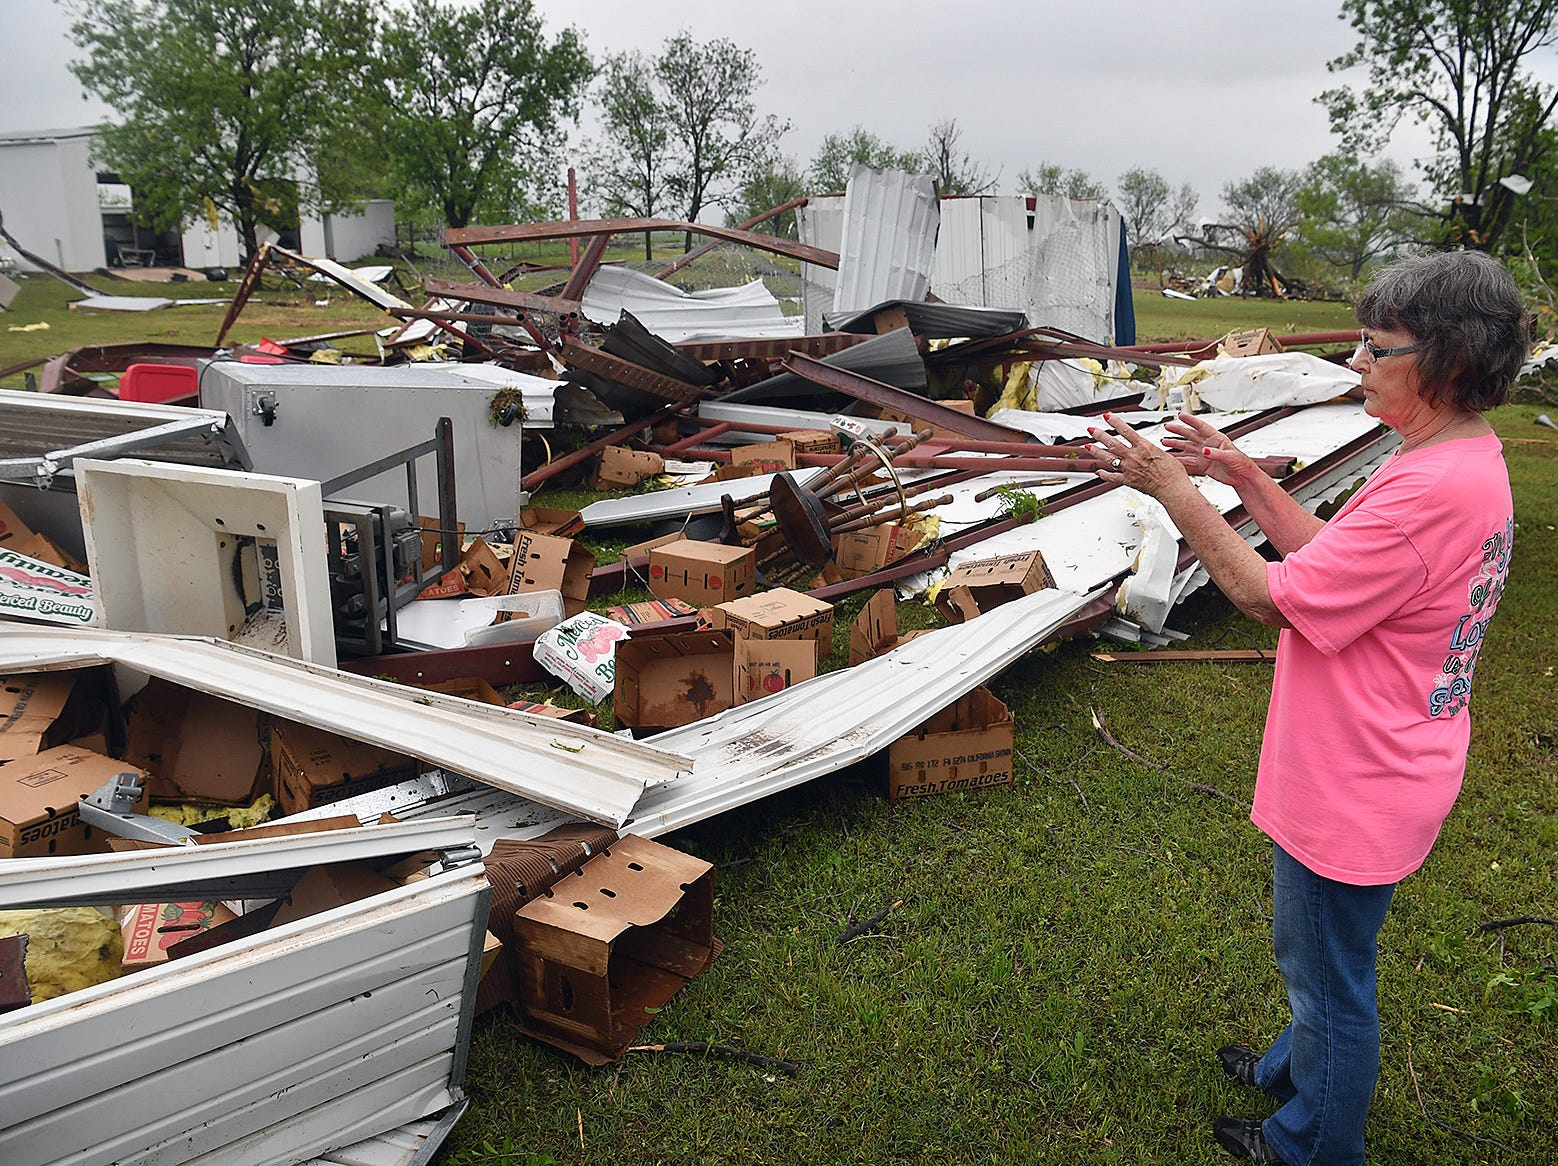 Toni Jetton describes some of the agriculture equipment that was destroyed when a tornado tore through Jetton Farms in Charlie, Texas Tuesday evening, April 30, 2019.